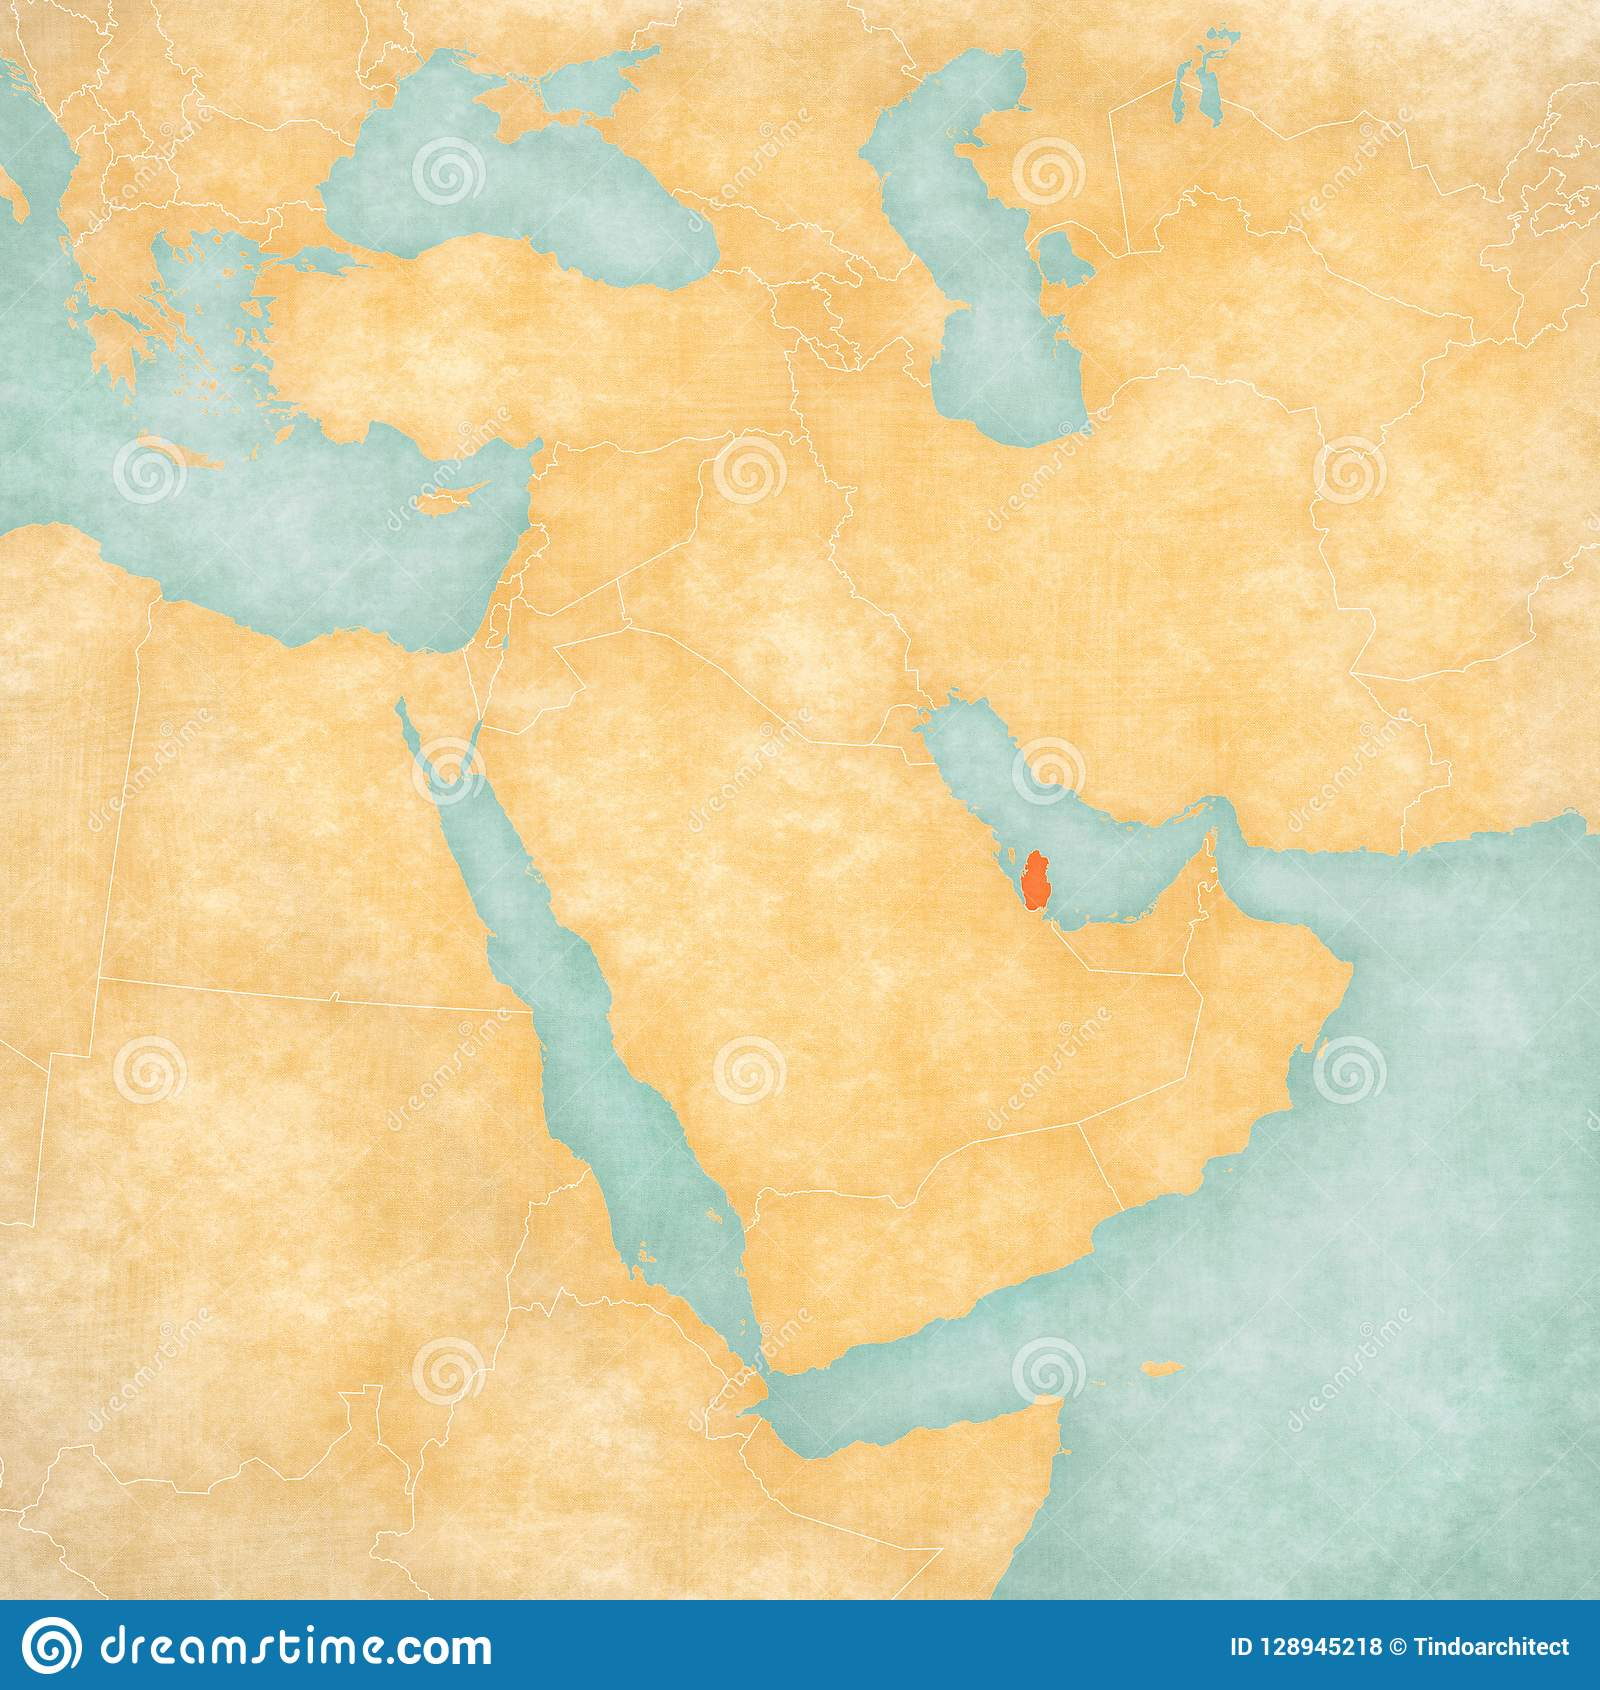 Map of Middle East - Qatar stock illustration. Illustration of retro Qatar Middle East Map on